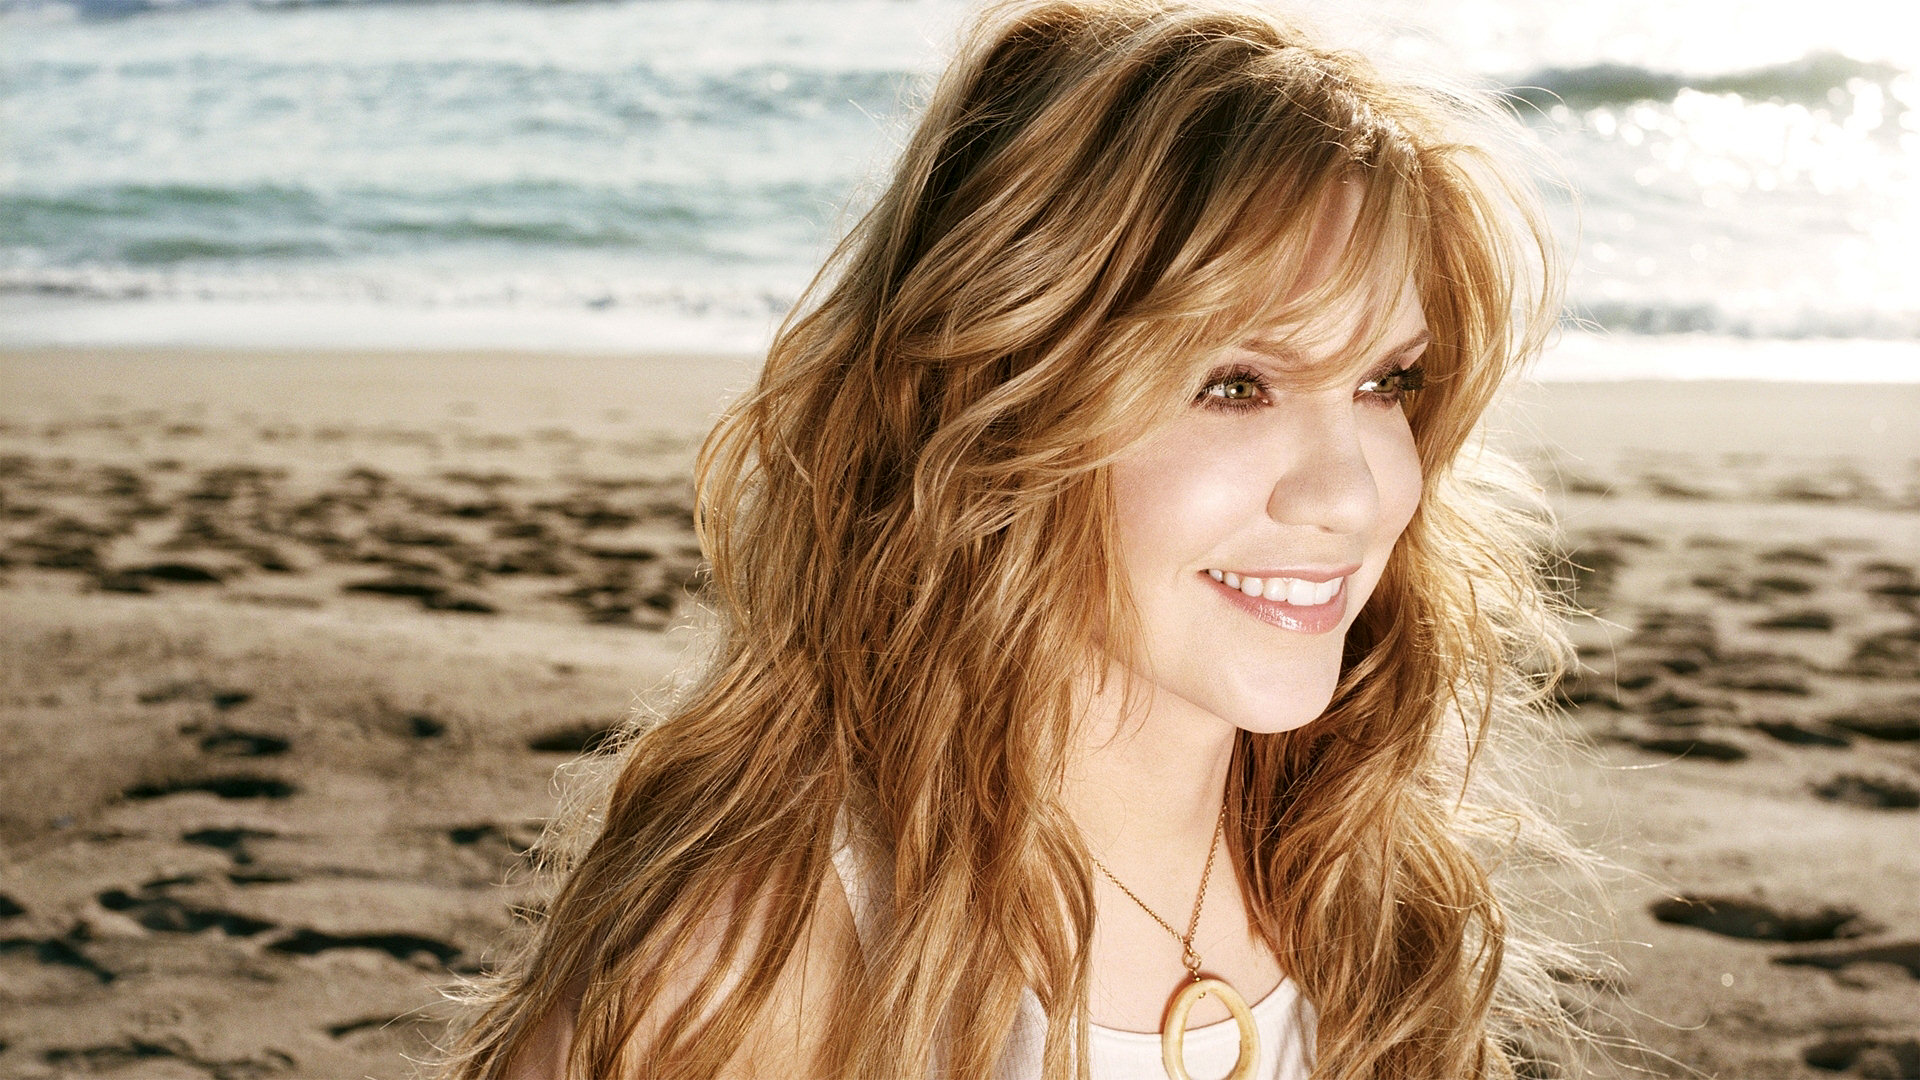 Cute Korean Wallpaper Hd 6 Alison Krauss Hd Wallpapers Background Images